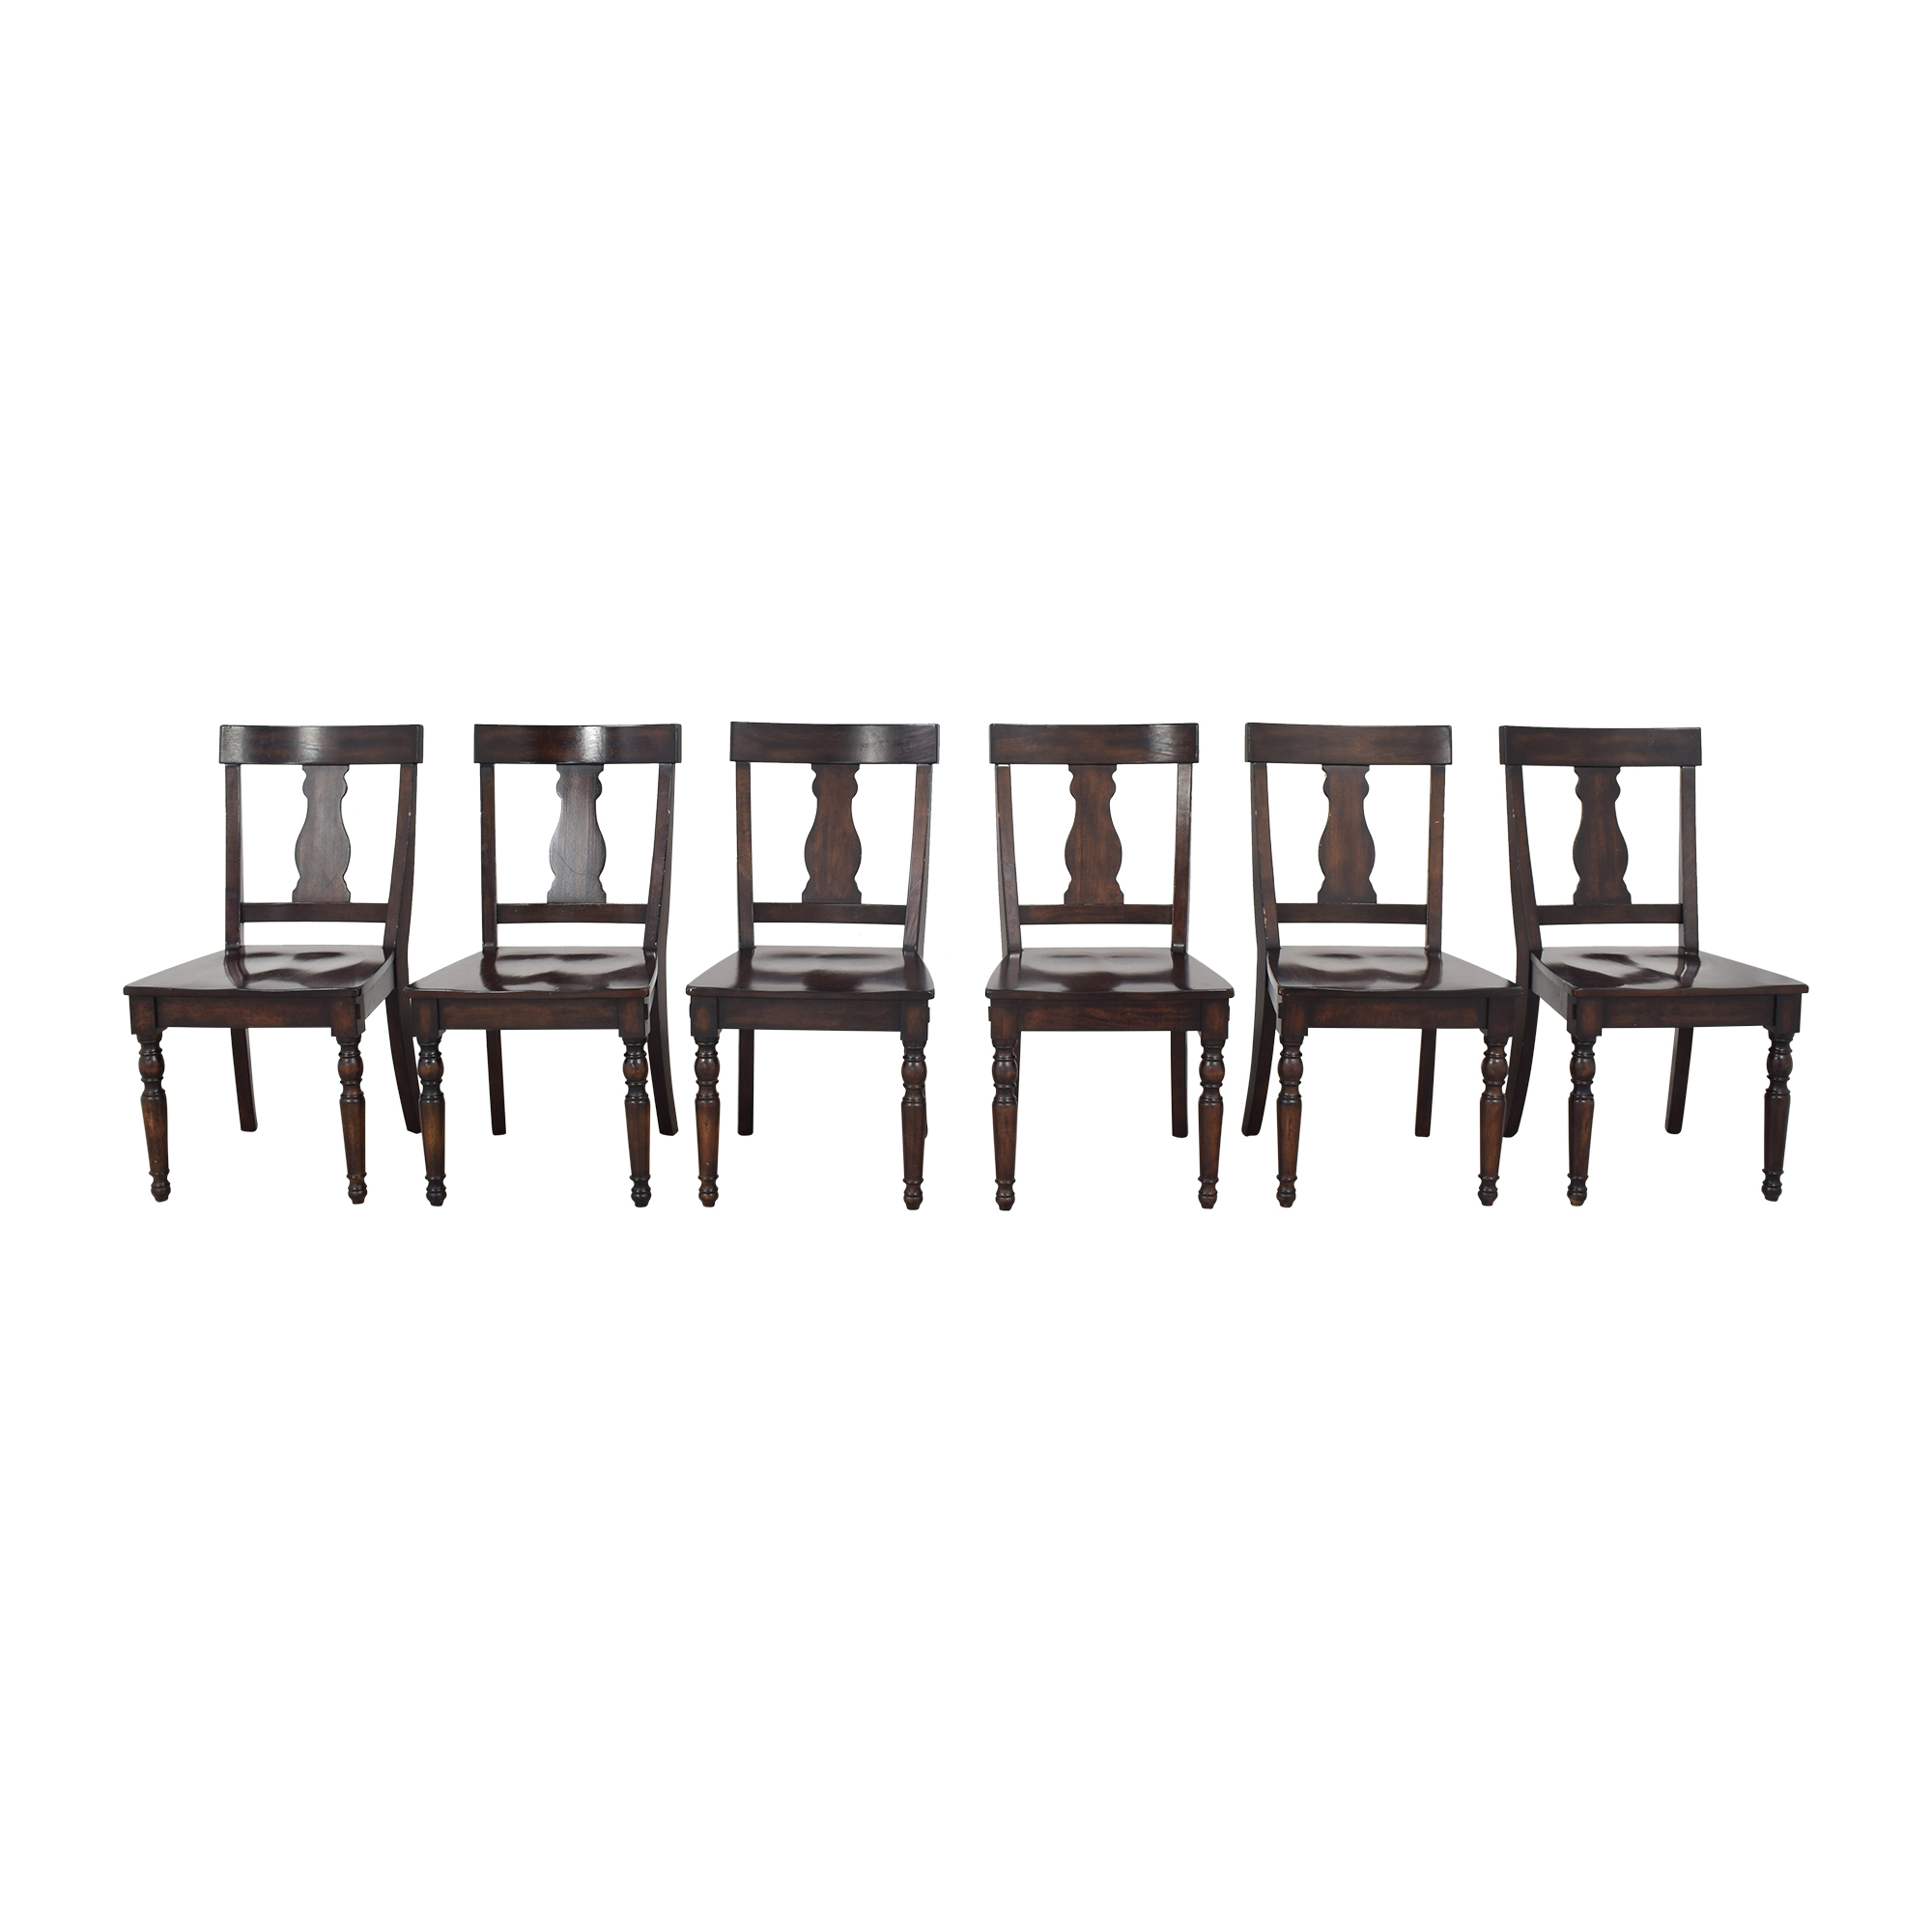 Pottery Barn Pottery Barn Fiddleback Dining Chairs for sale